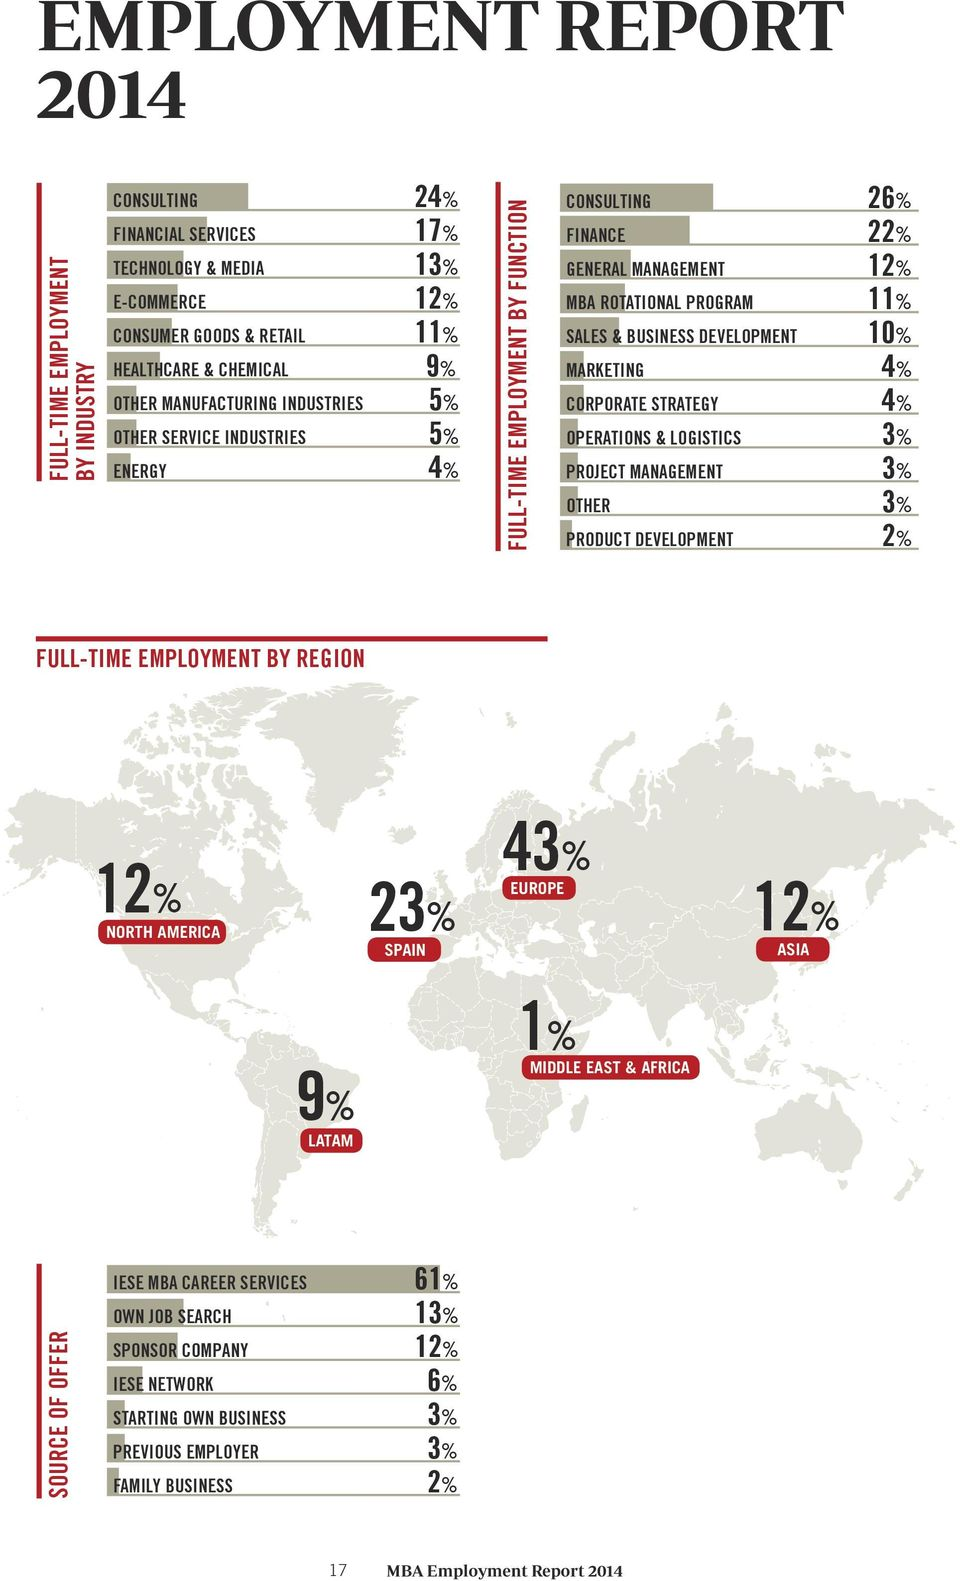 DEVELOPMENT 10% MARKETING 4% CORPORATE STRATEGY 4% OPERATIONS & LOGISTICS 3% PROJECT MANAGEMENT 3% OTHER 3% PRODUCT DEVELOPMENT 2% FULL-TIME EMPLOYMENT BY REGION 12% NORTH AMERICA 23% SPAIN 43%